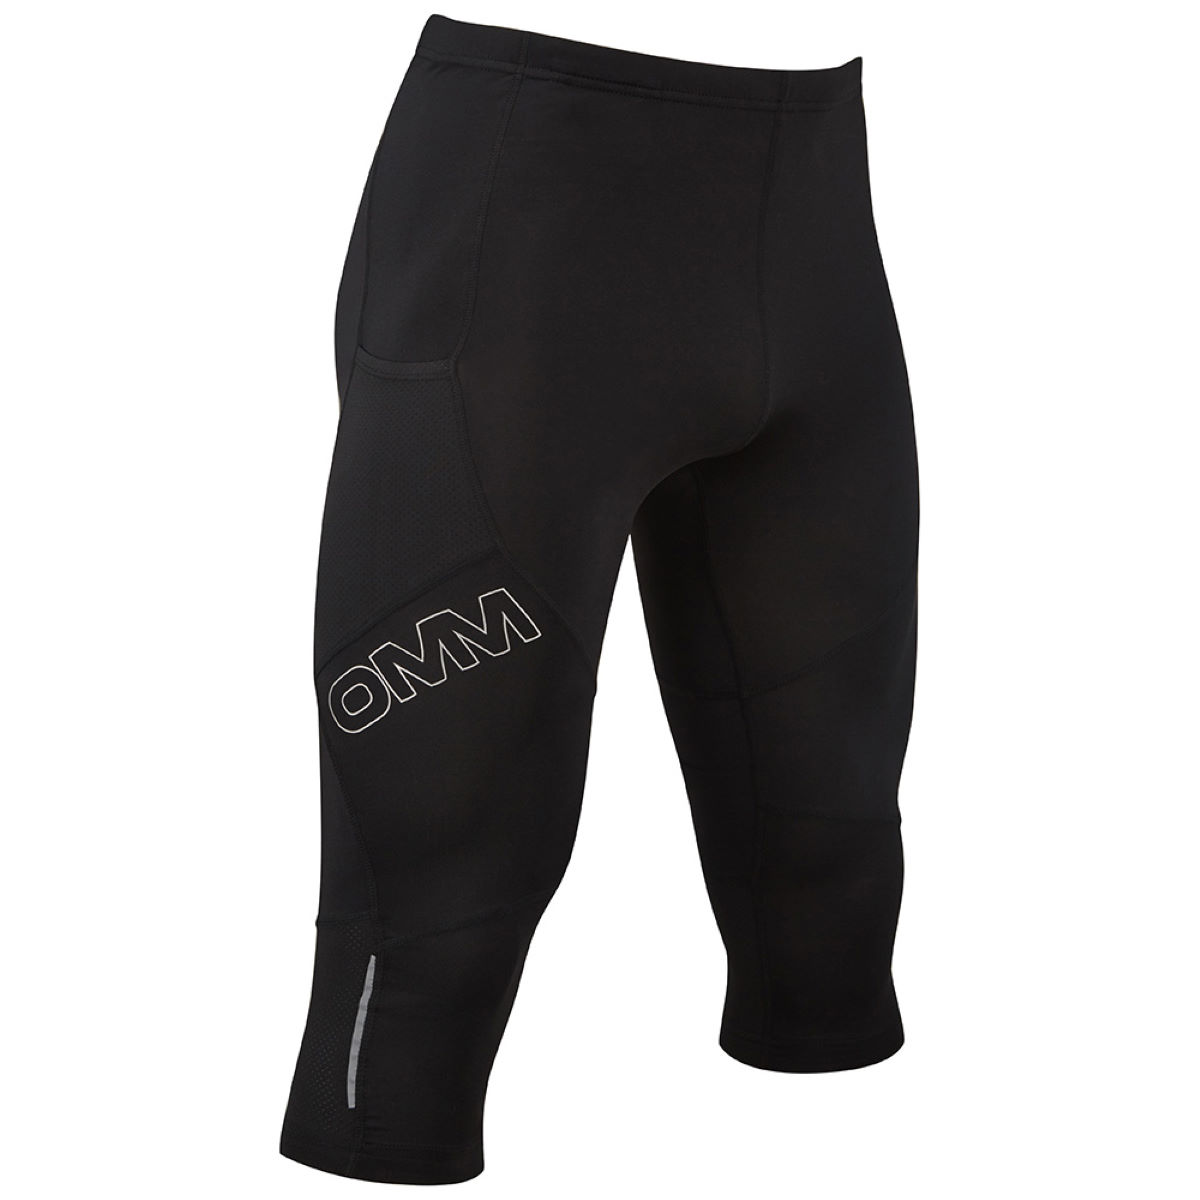 Collant OMM Flash 0,75 - XL Noir Shorts de running